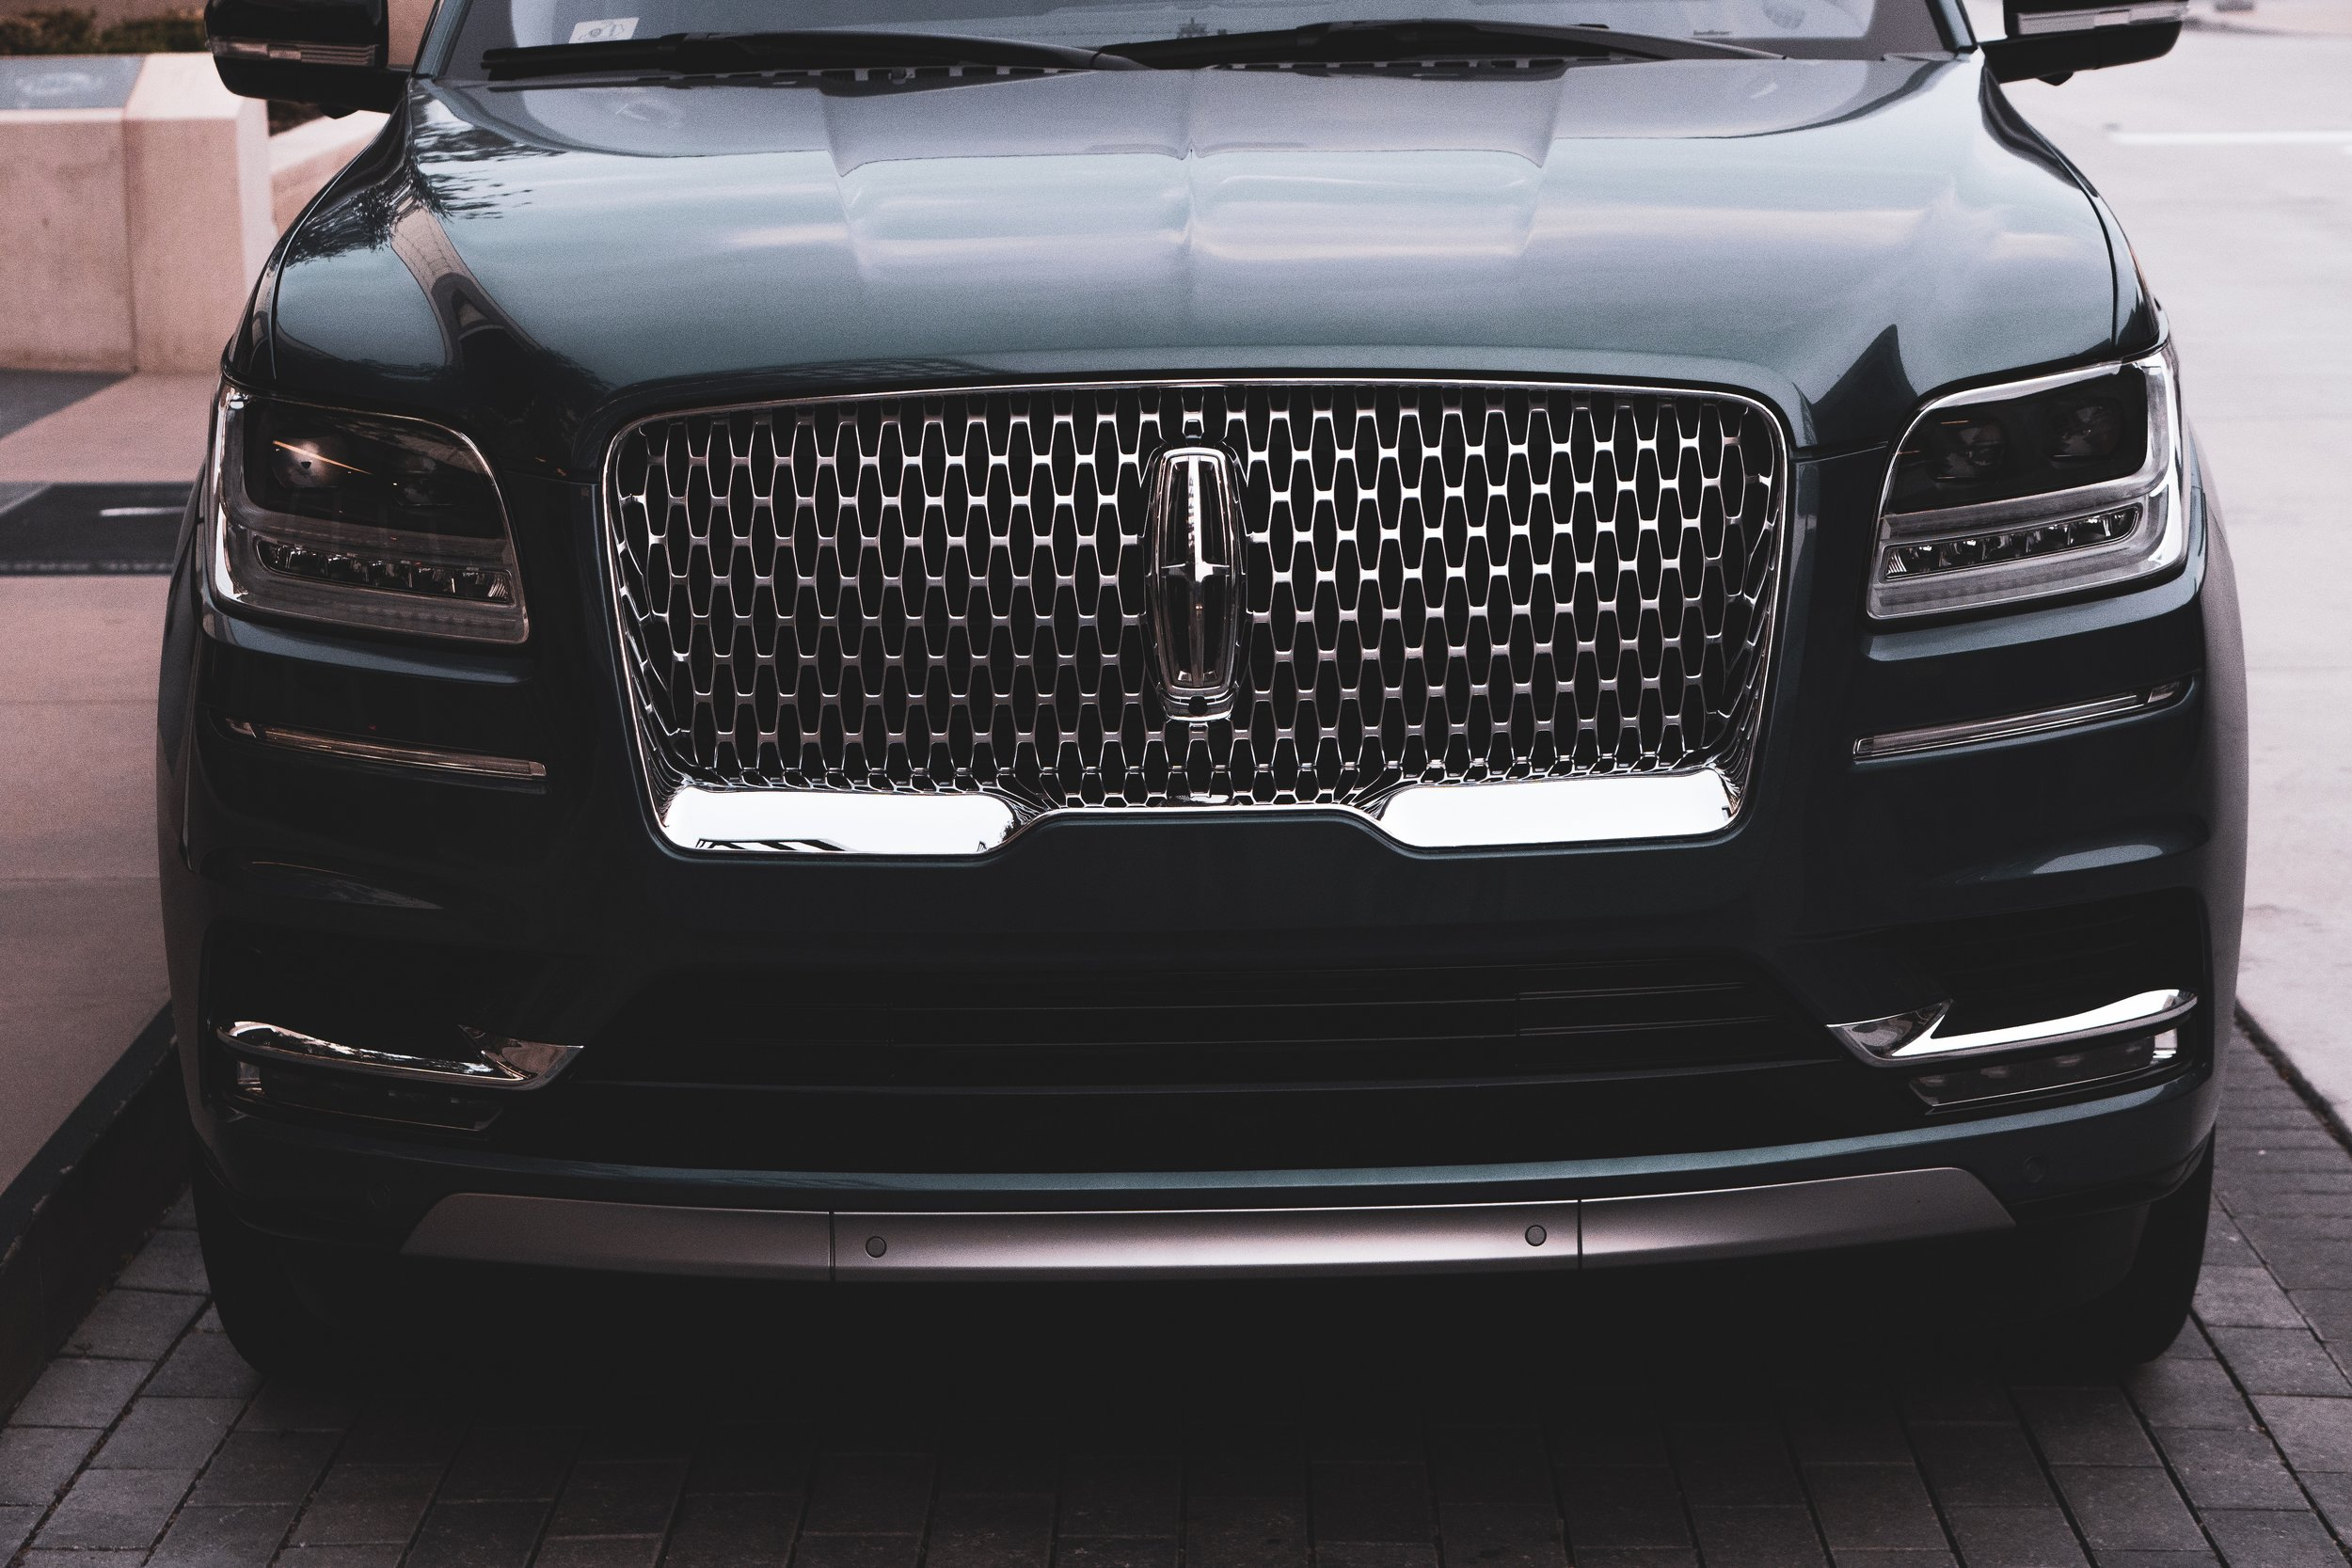 A Lincoln Navigator not involved in the fatal crashes. Photo by Kyrillos Samaan courtesy of Unsplash.